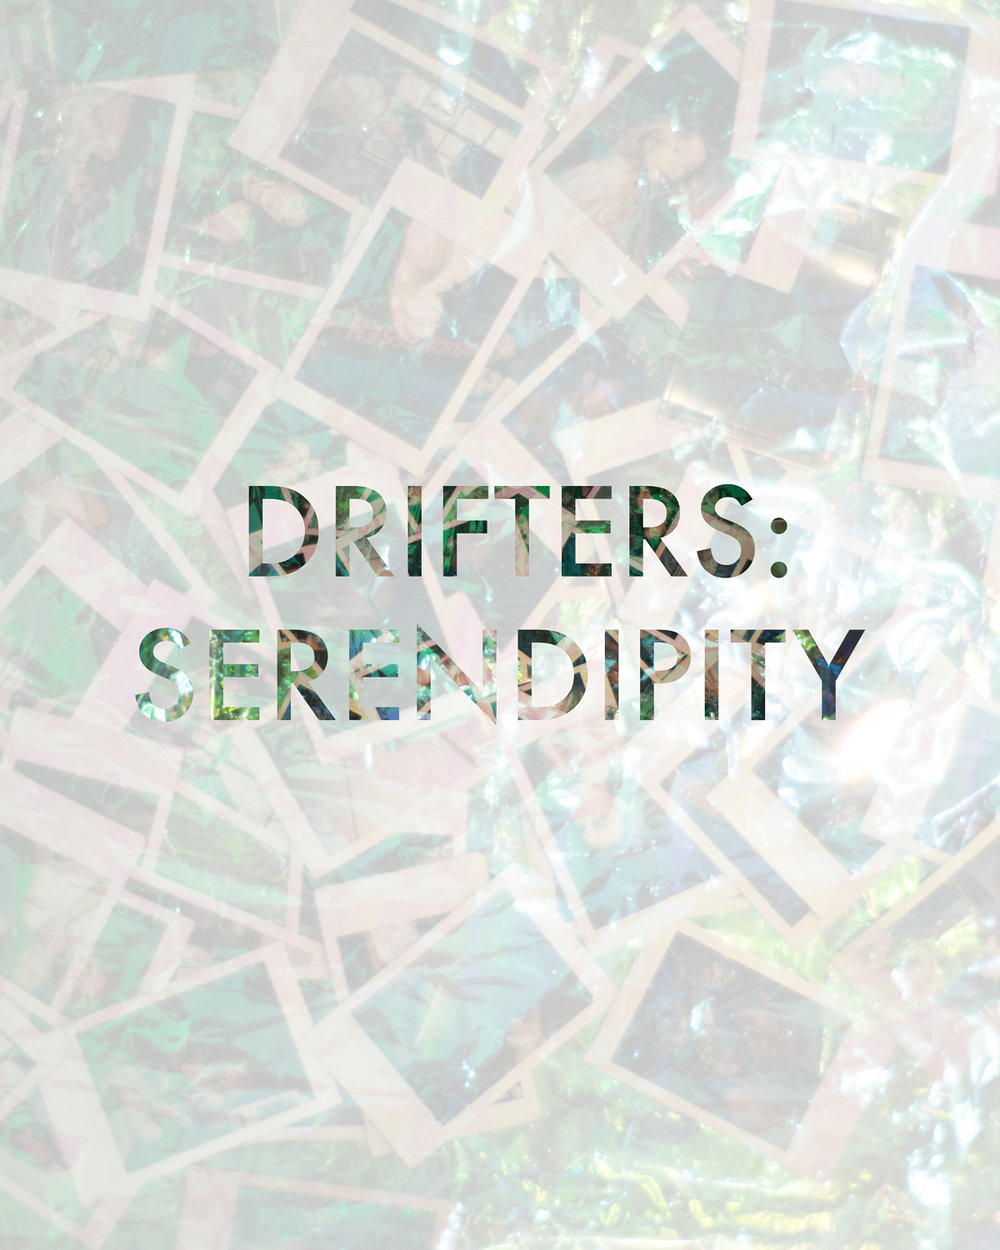 Drifters: Serendipity  marks the conclusion to the first chapter of our creative exploration of which photography is the main medium. More importantly, this book has allowed us a momentary pause during which we have been able to revisit old memories, abandoned and fragmented thoughts. It has allowed us a space to put our vulnerability on display. It has enabled us to better understand ourselves in light of distant memories. However, it is our belief that we do not experience this life alone, so if you're also going through a difficult time, know that we're sharing the pressure, the fear, and the loneliness.   Get the physical book here!     Get the e-book here!     Learn more about our book